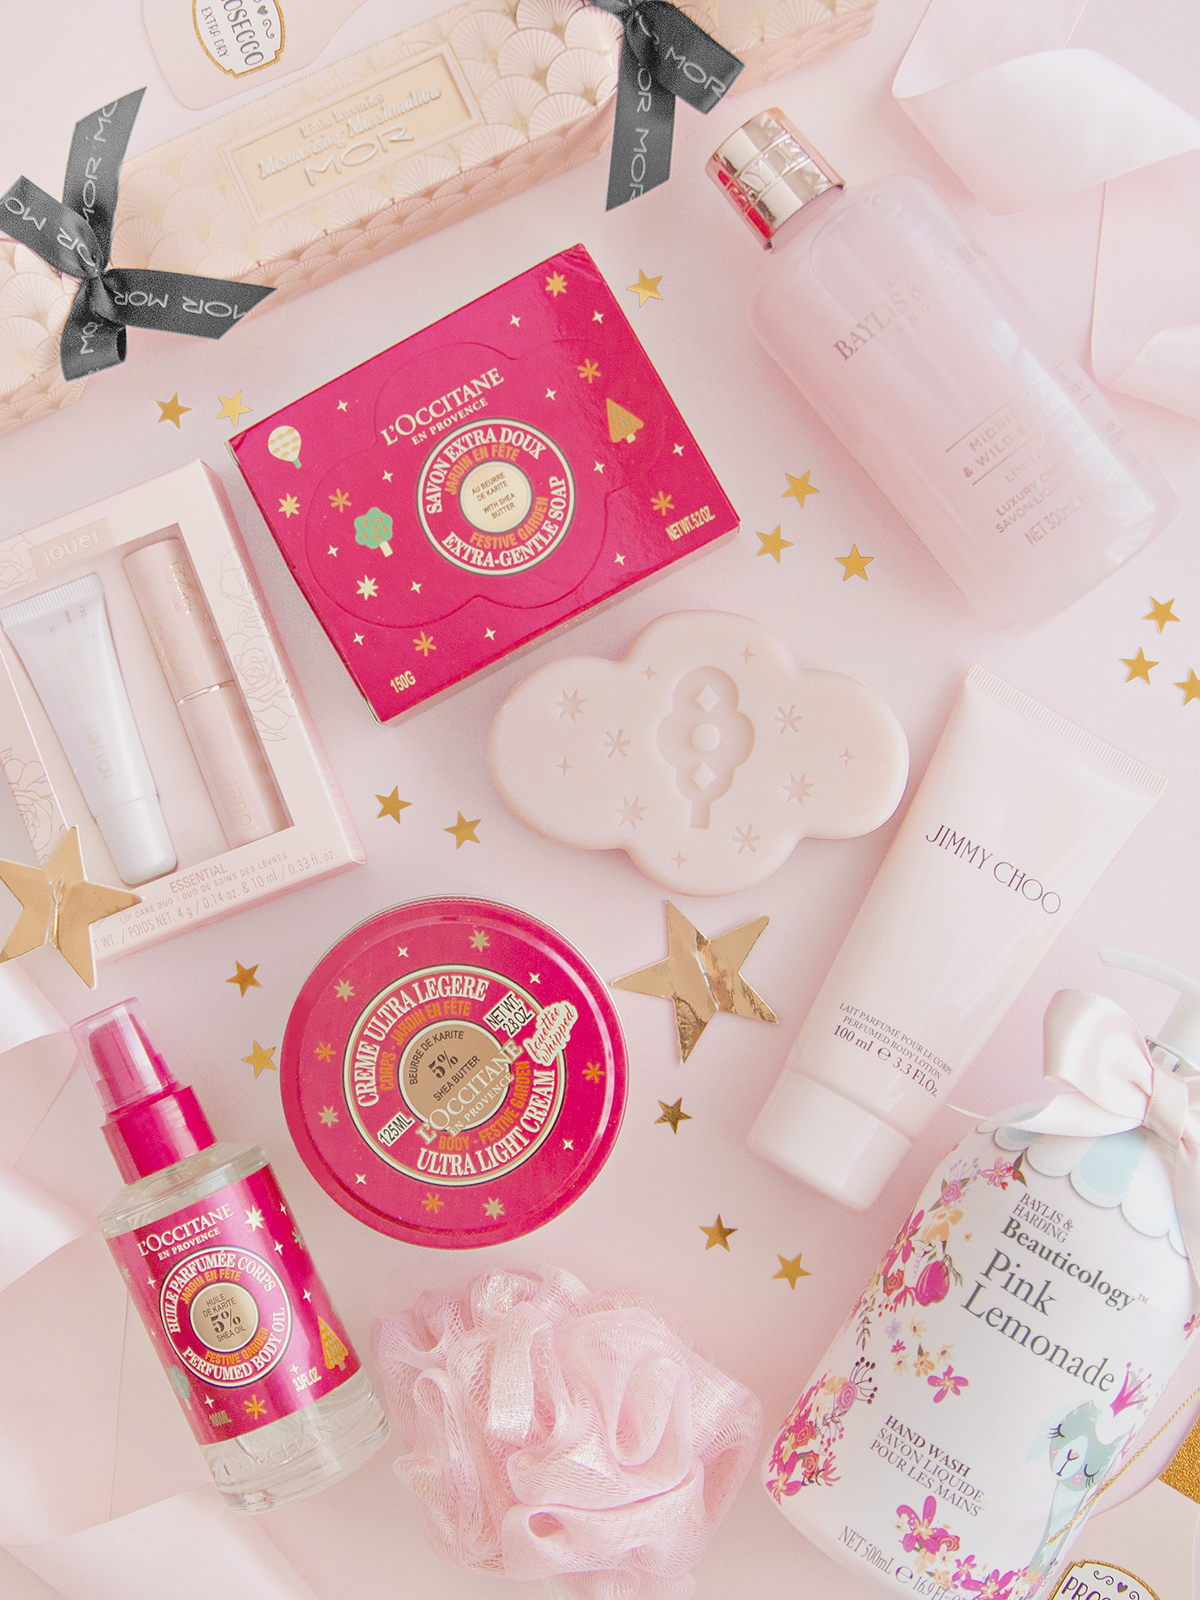 A selection of Bath and Dody Christmas products from brands L'Occitane, Baylis and Harding and Jimmy Choo